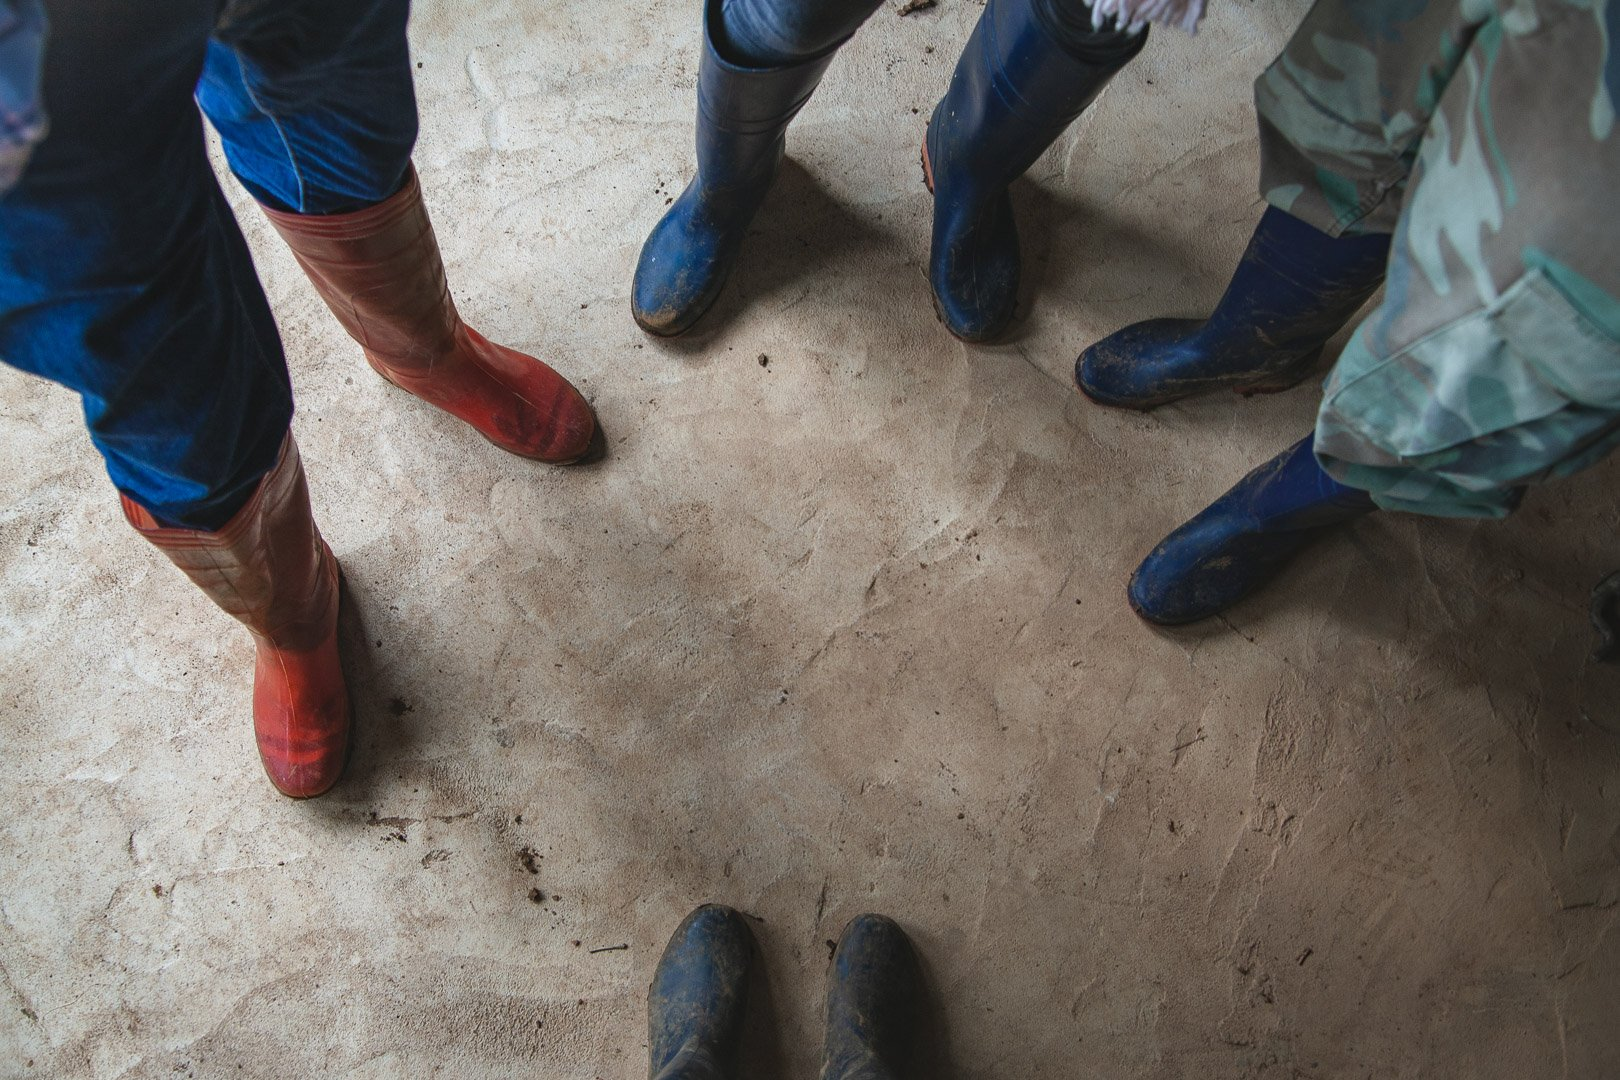 four pairs of feet with different colored rain boots